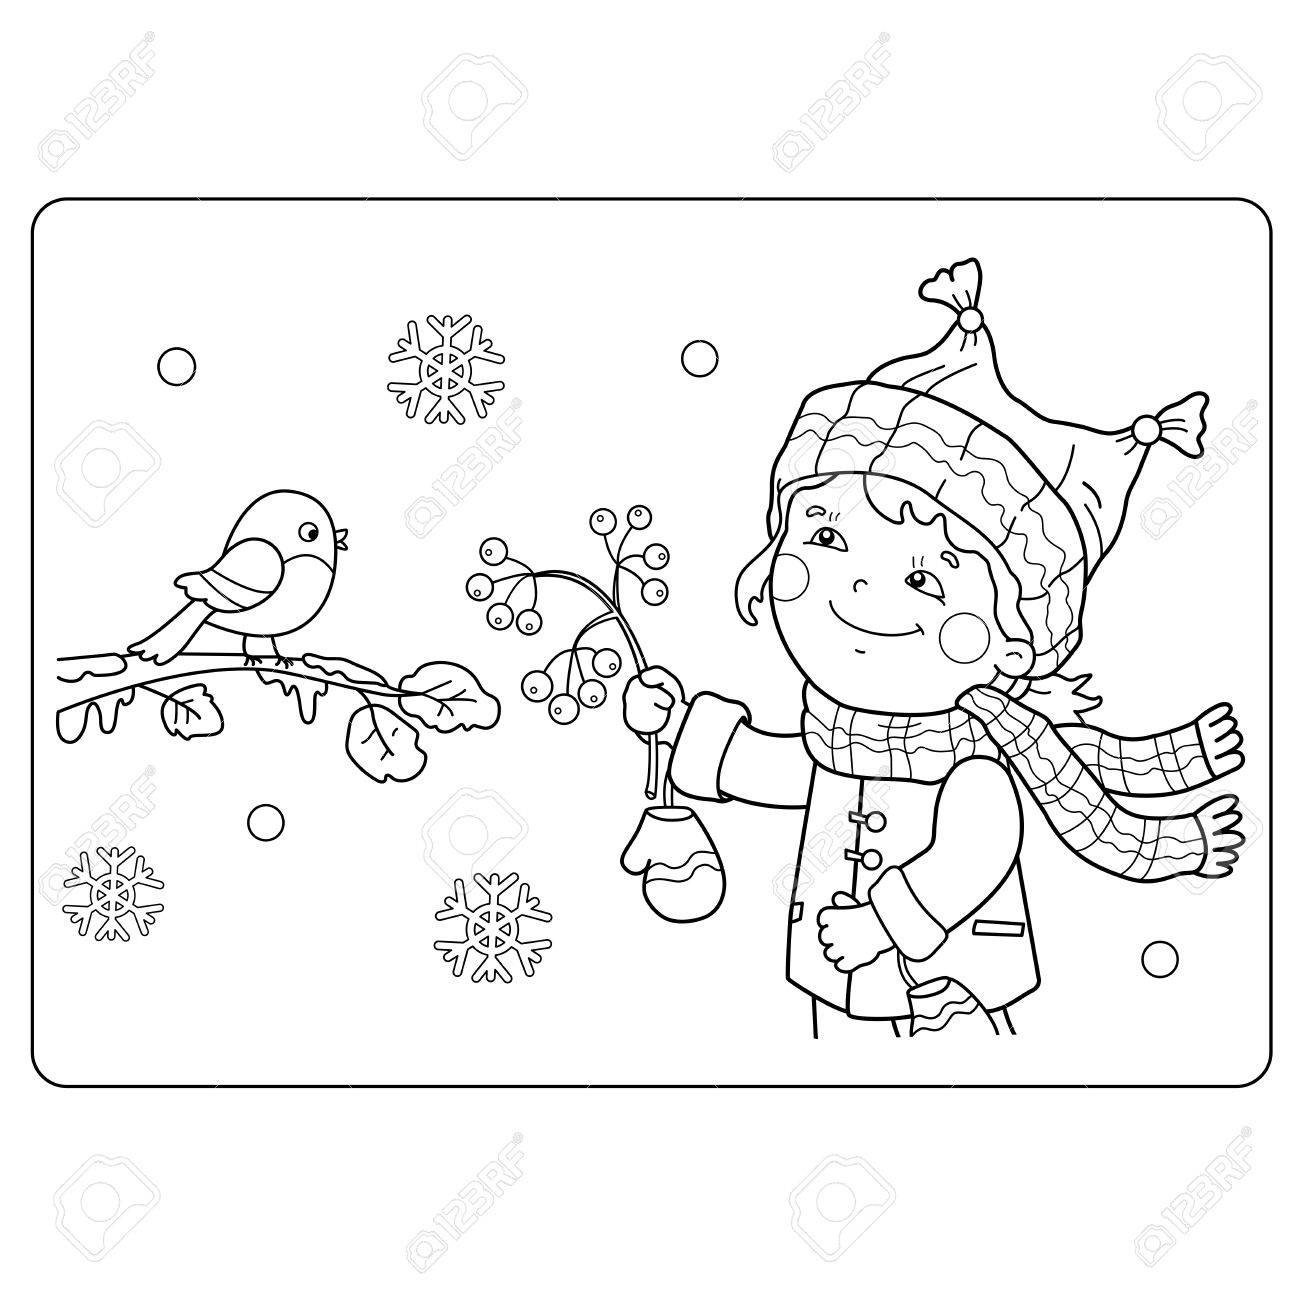 Coloring Page Outline Of Cartoon Girl Feeding Birds Winter Book For Kids Stock